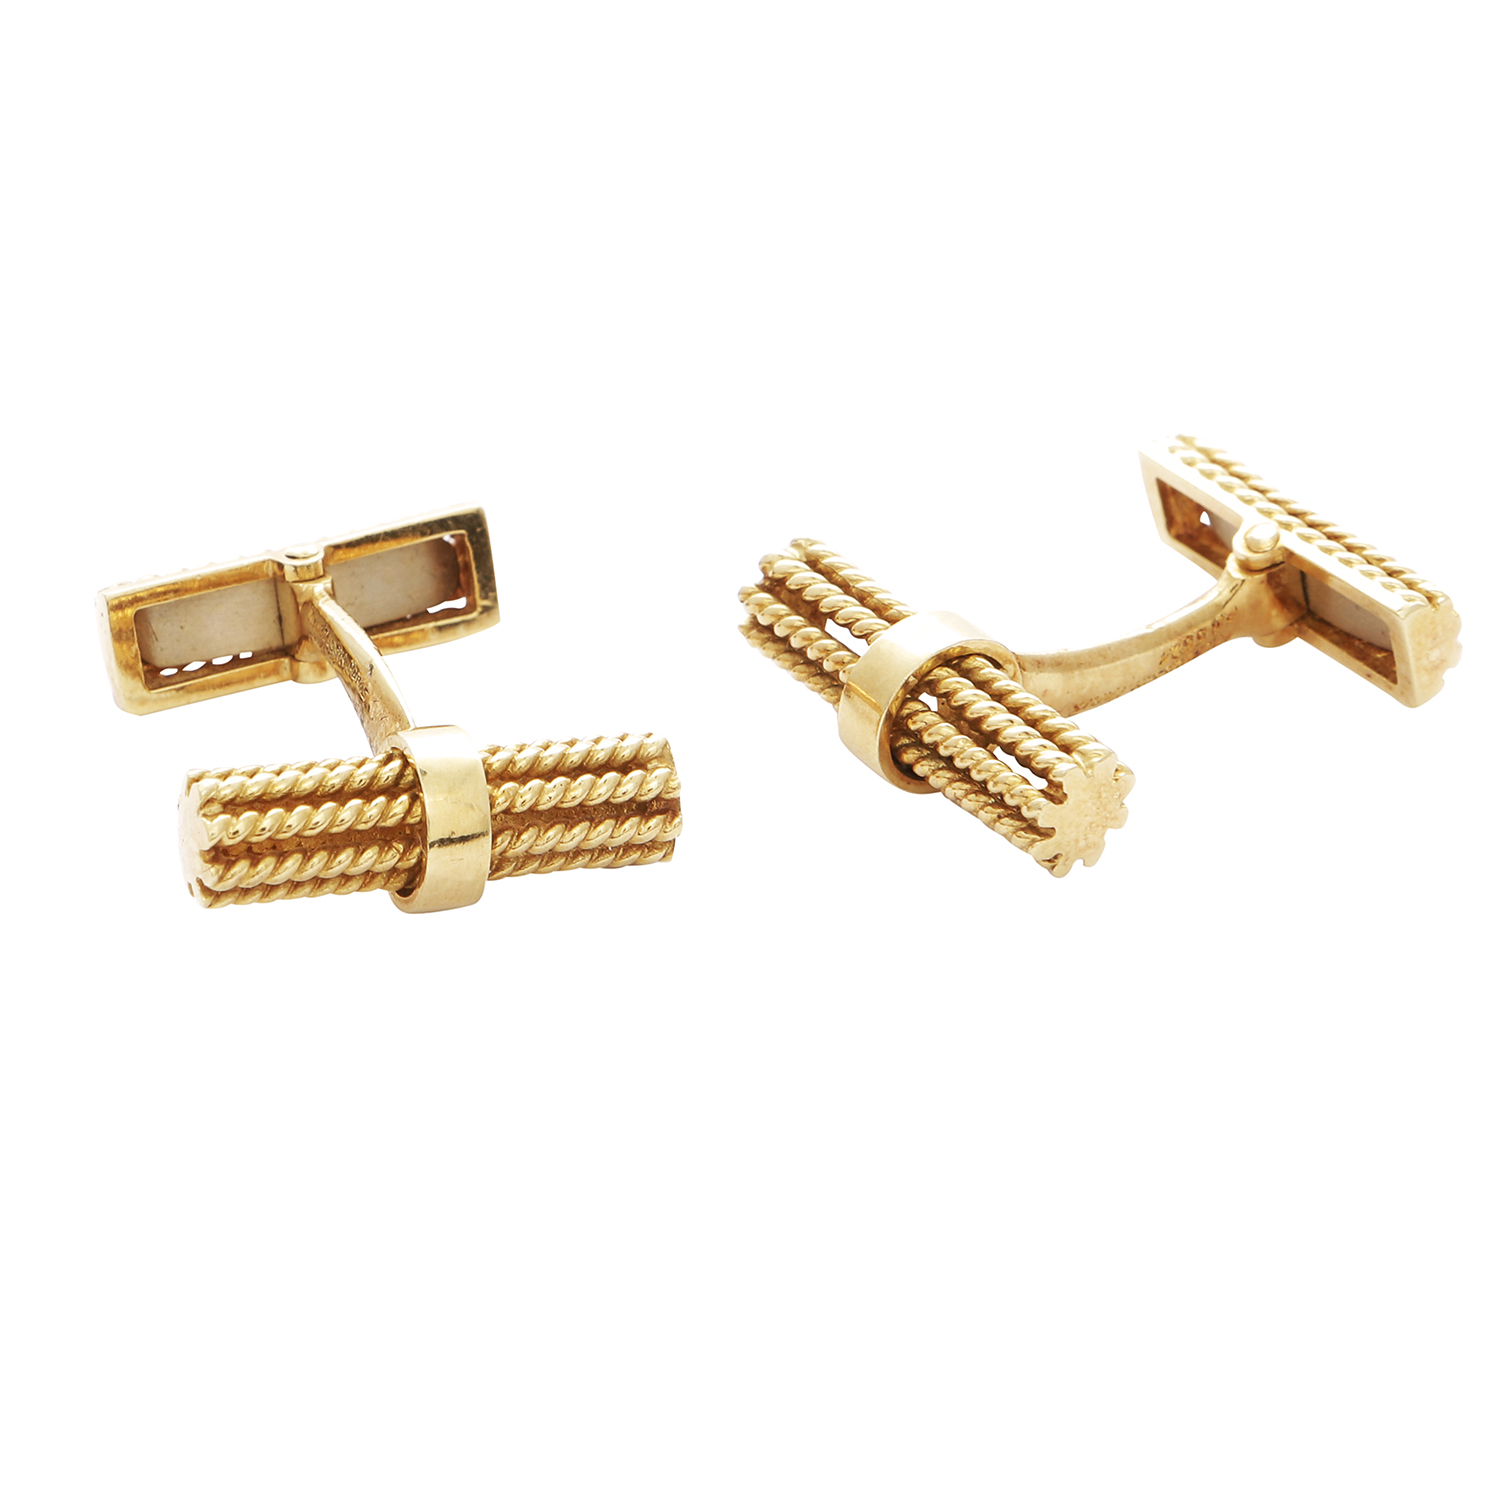 A PAIR OF VINTAGE CUFFLINKS in 18ct yellow gold, each formed of two ropetwist batons, signed